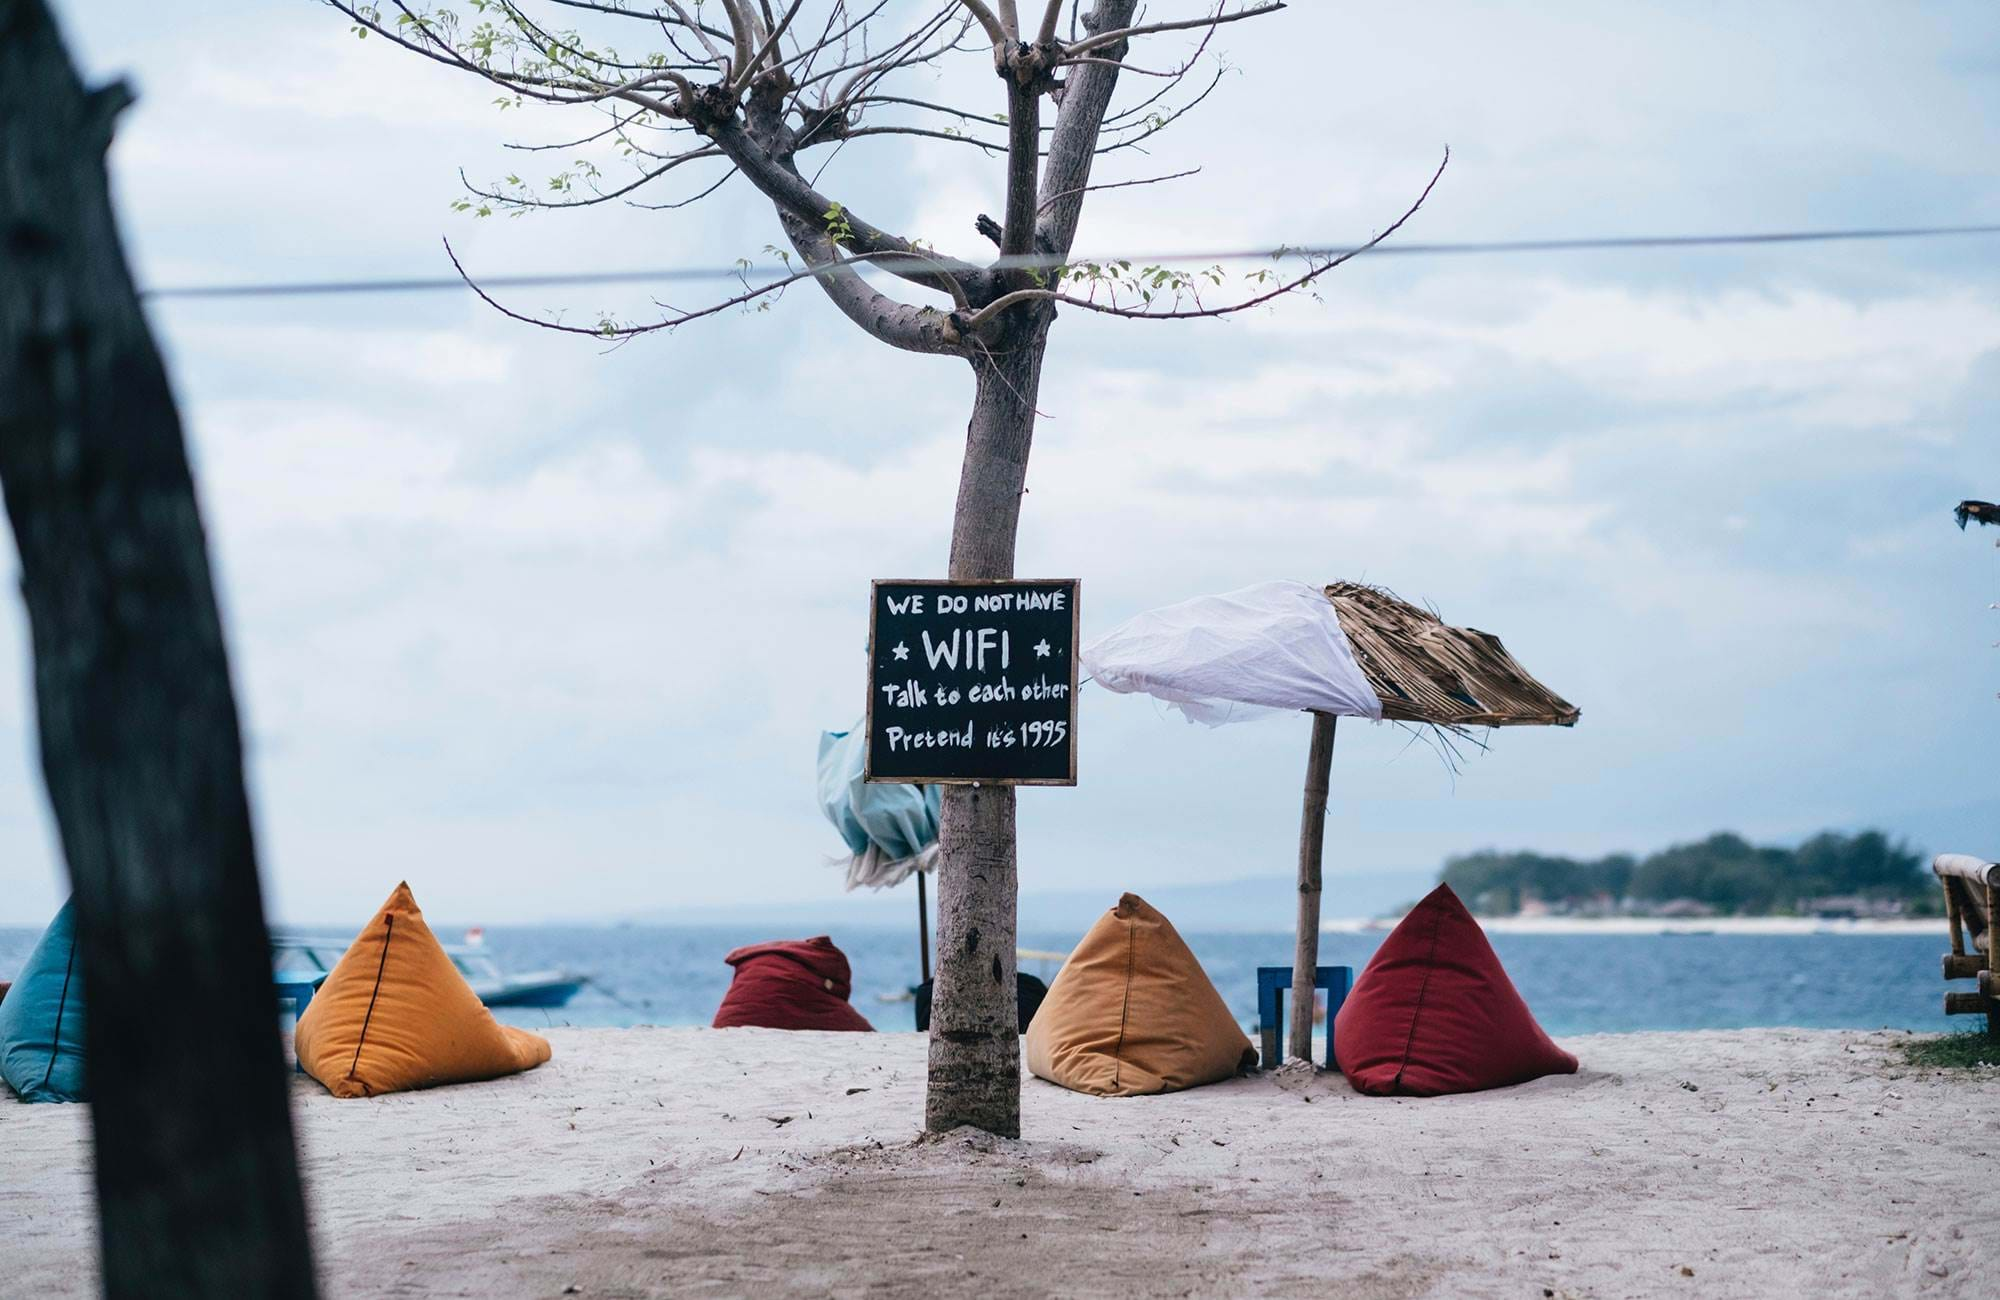 gili-island-indonesia-no-wifi